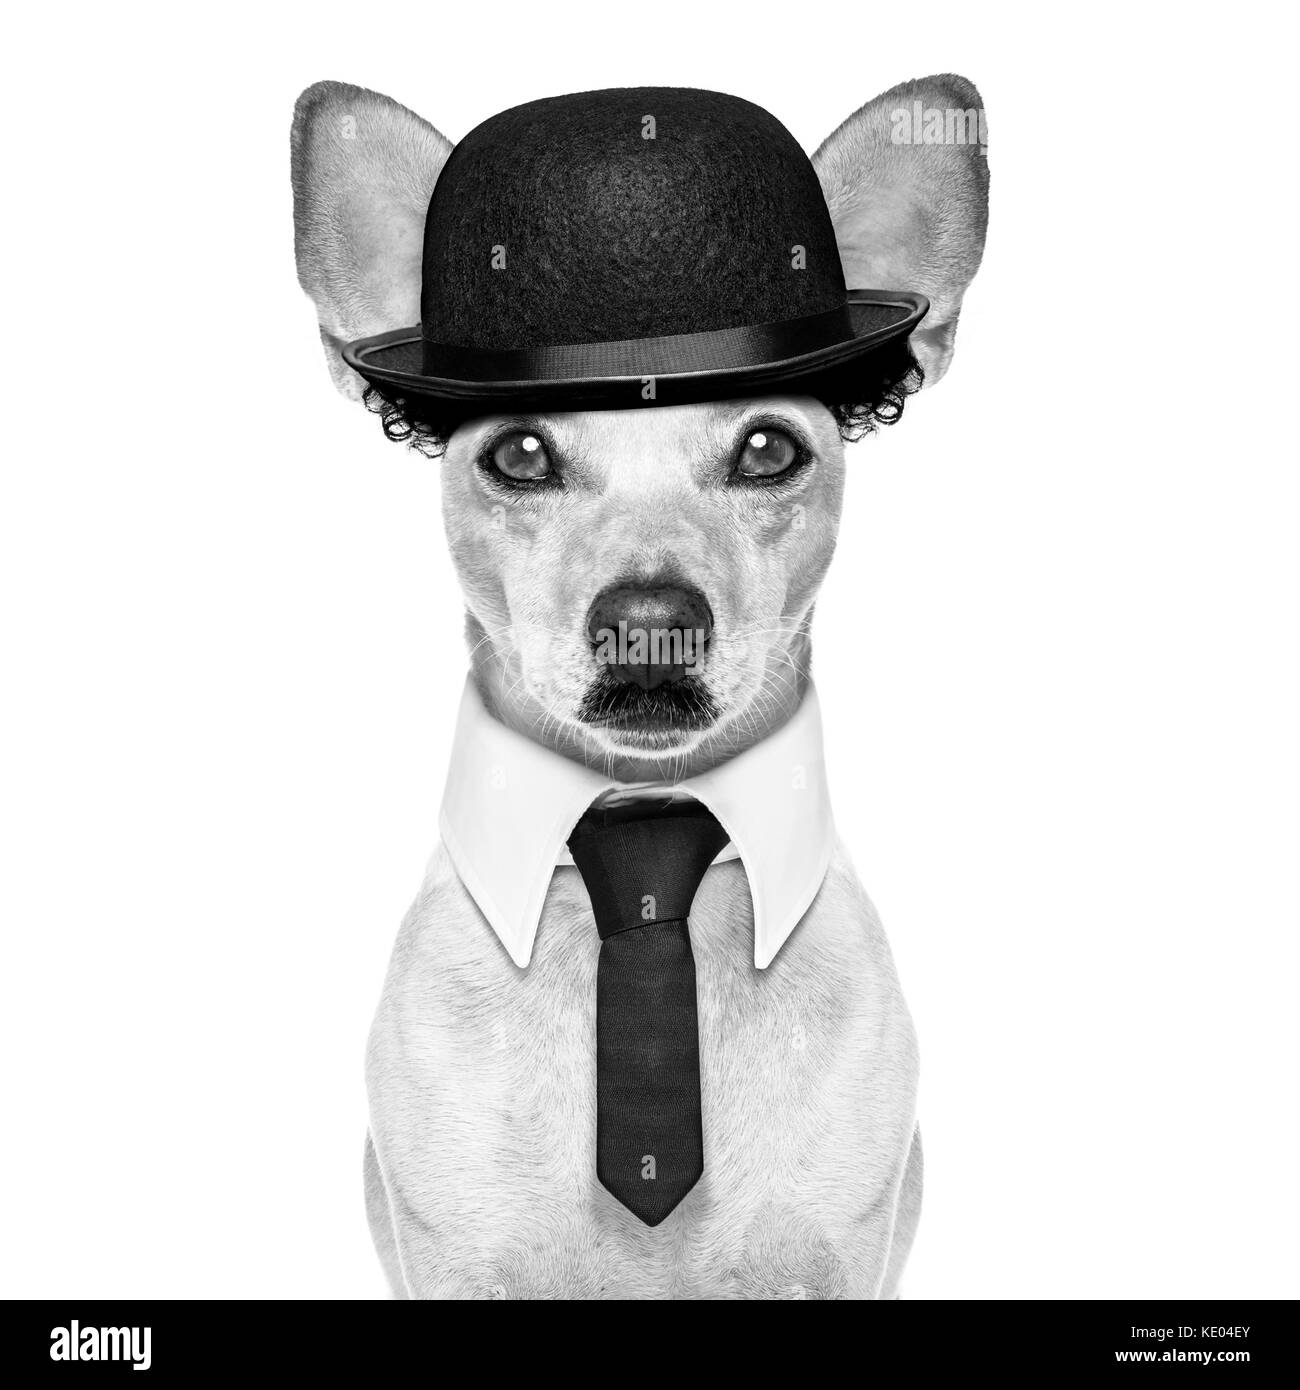 comedian classic dog terrier, wearing a bowler hat ,black tie and mustache, isolated on white background in black - Stock Image